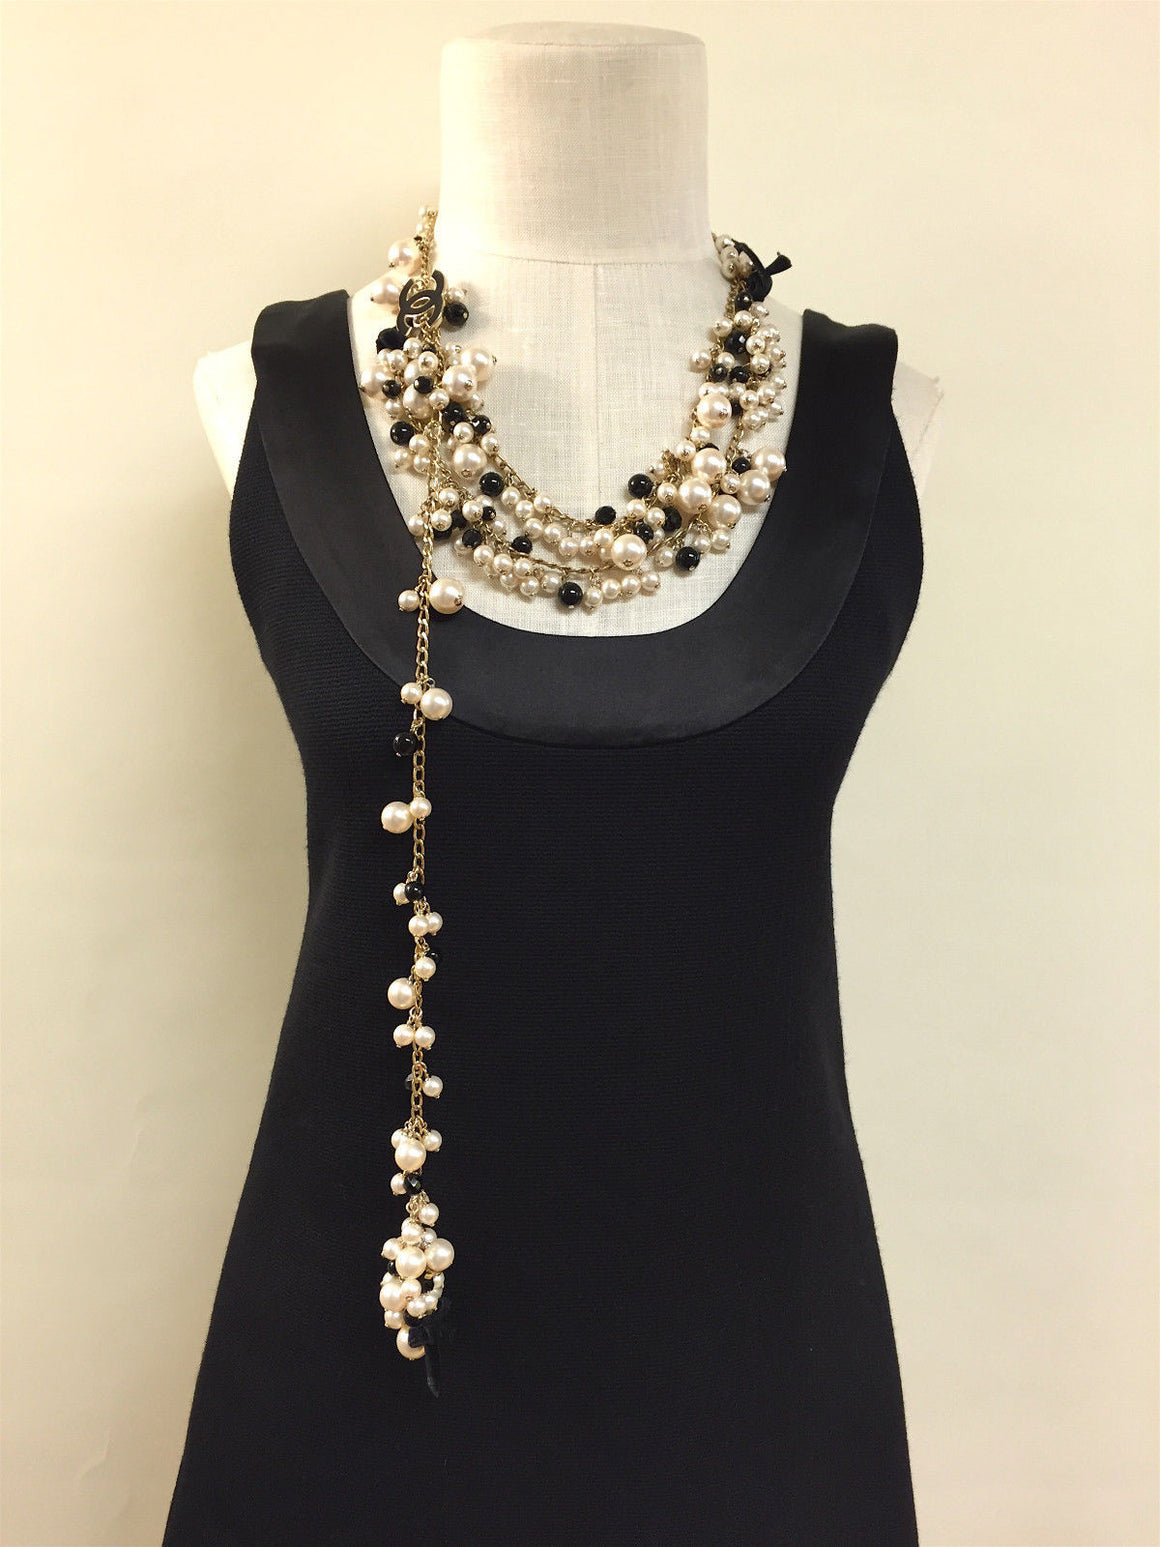 bisbiz.com CHANEL  From the 2007 Cruise Collection Pearls & Jet Black Enameled CC & Velvet Bows Tiered Belt Necklace One Size - Bis Designer Resale